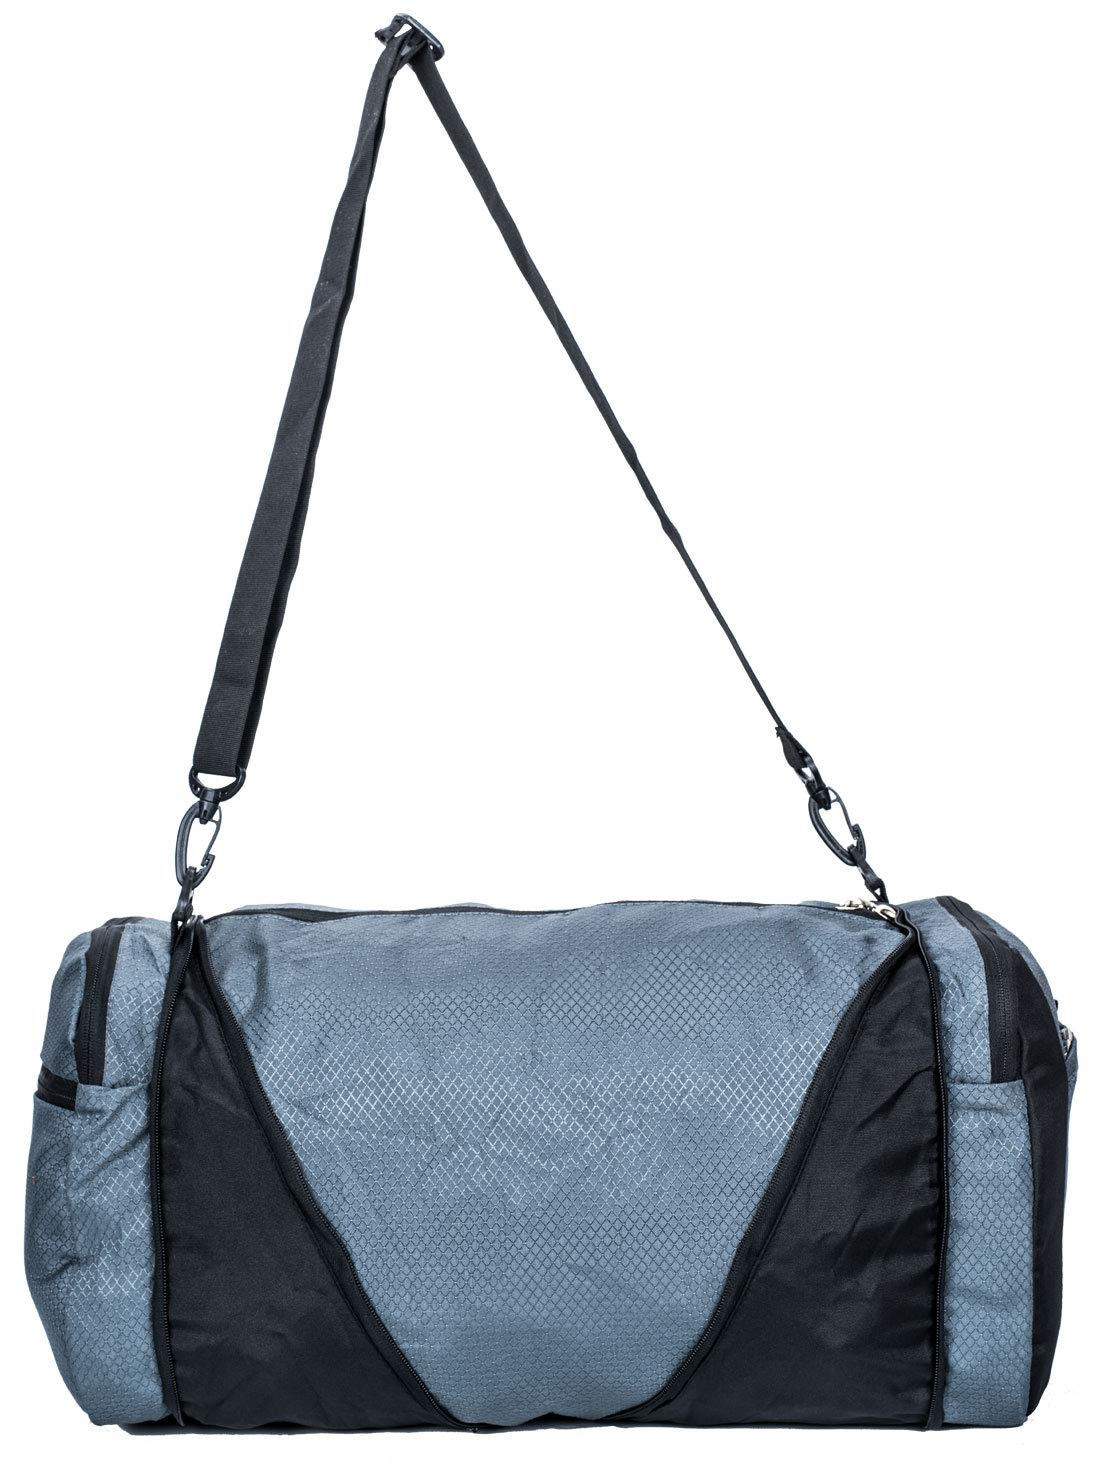 KILLER Polyester 23 Ltr Grey Travel Duffle